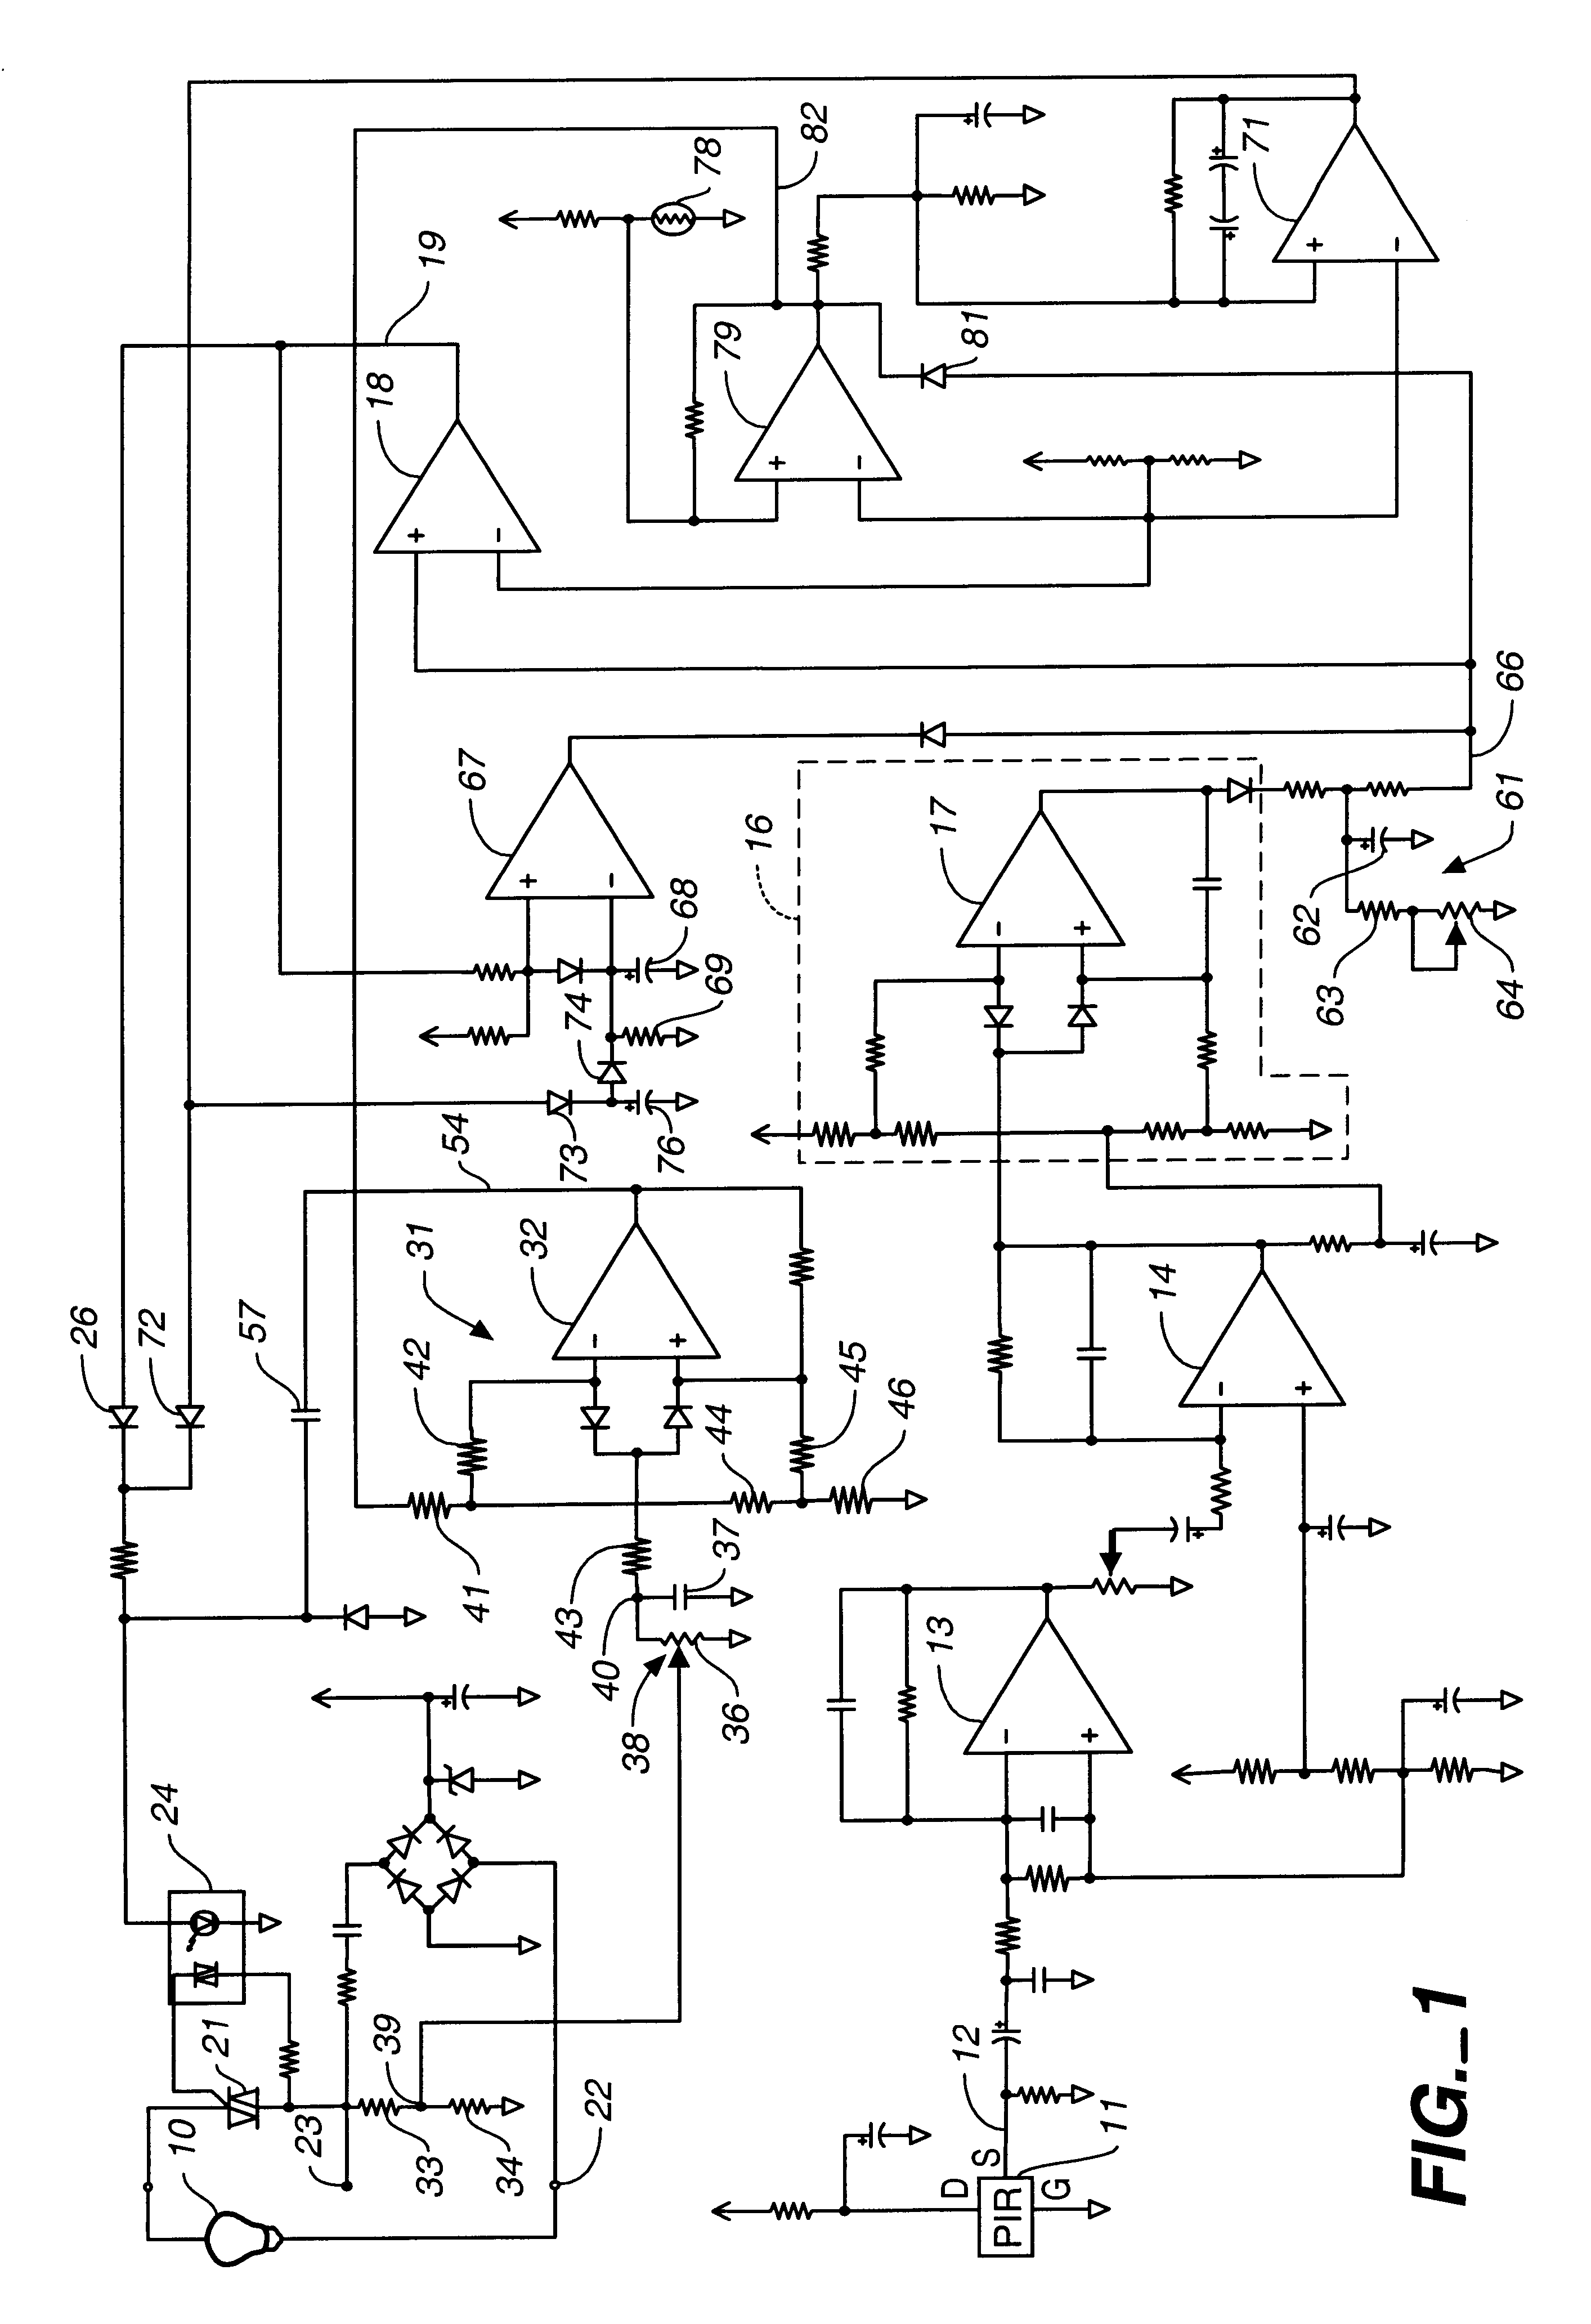 Patent Us6225748 Motion Detector Circuitry With Adjustable Triac Triggering Circuit Using Diac Here In This The Light Drawing